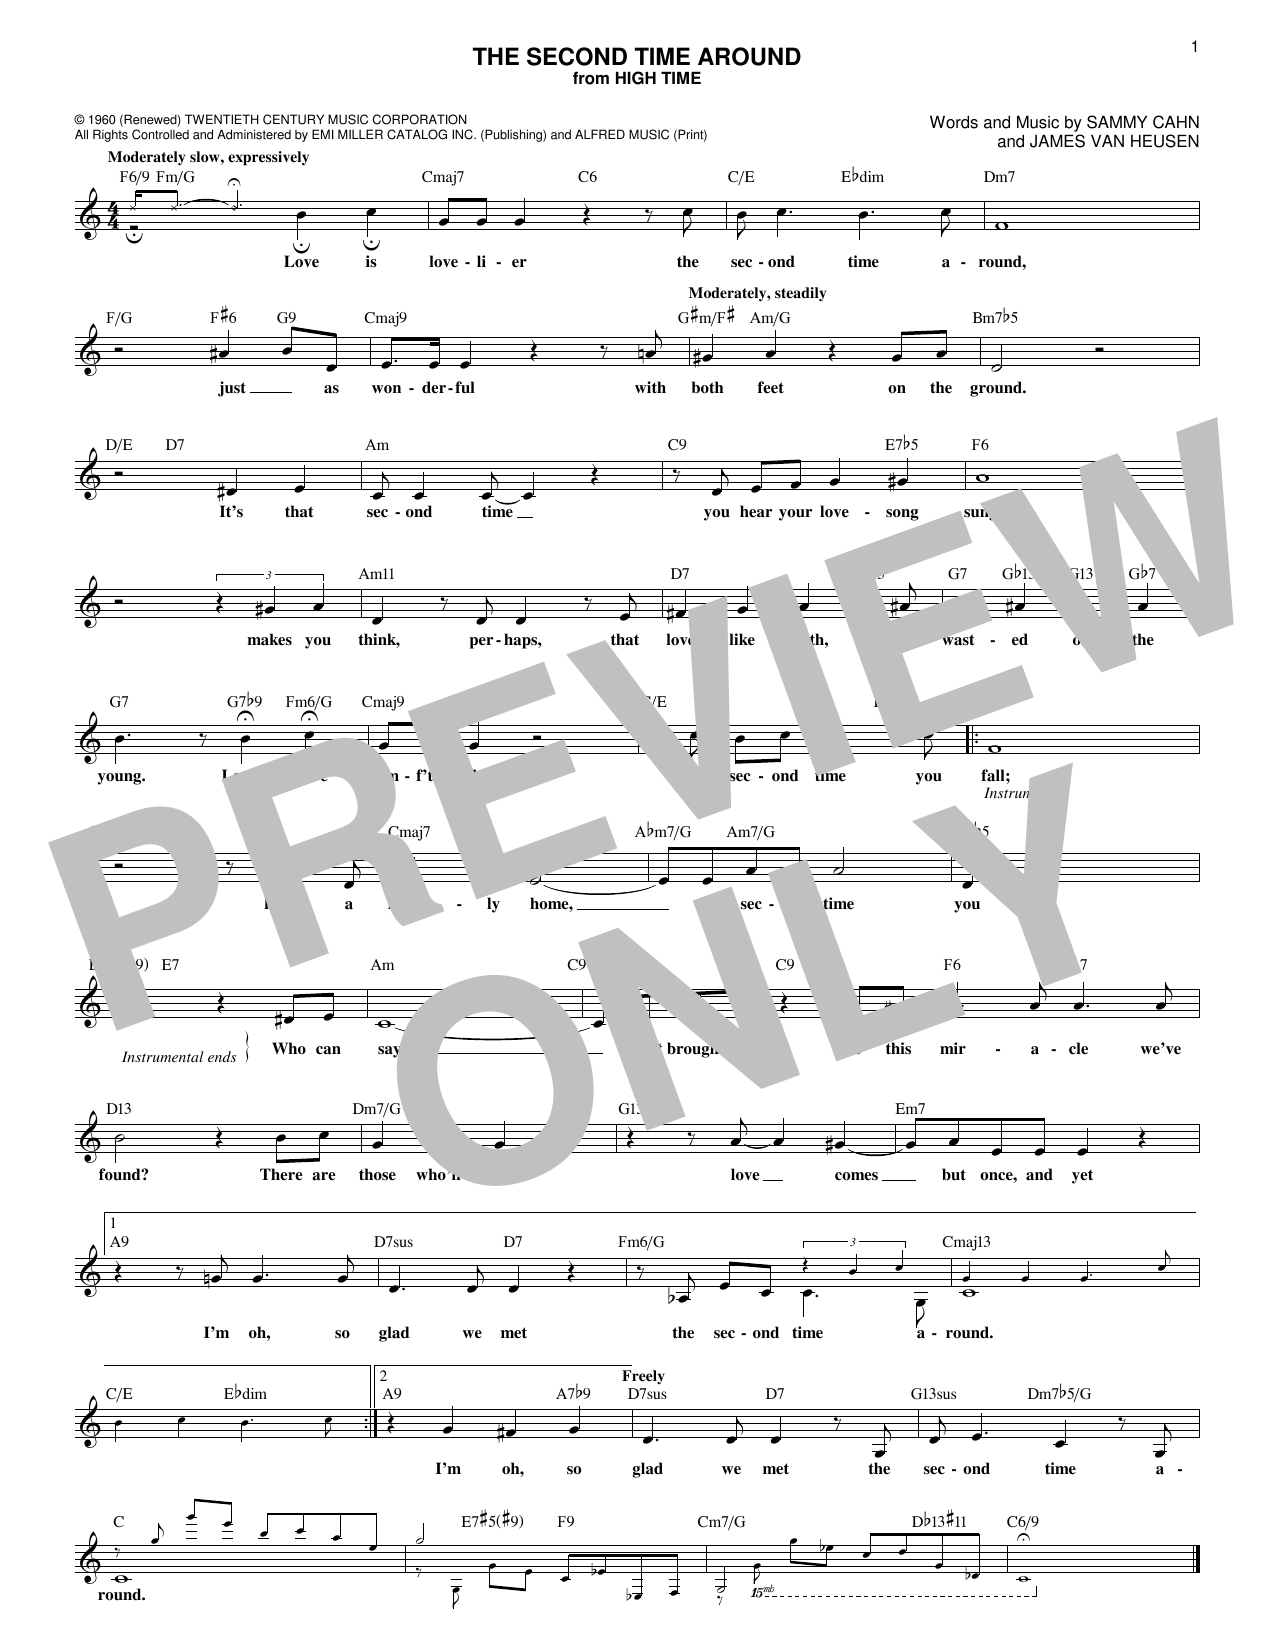 James Van Heusen The Second Time Around sheet music notes and chords. Download Printable PDF.